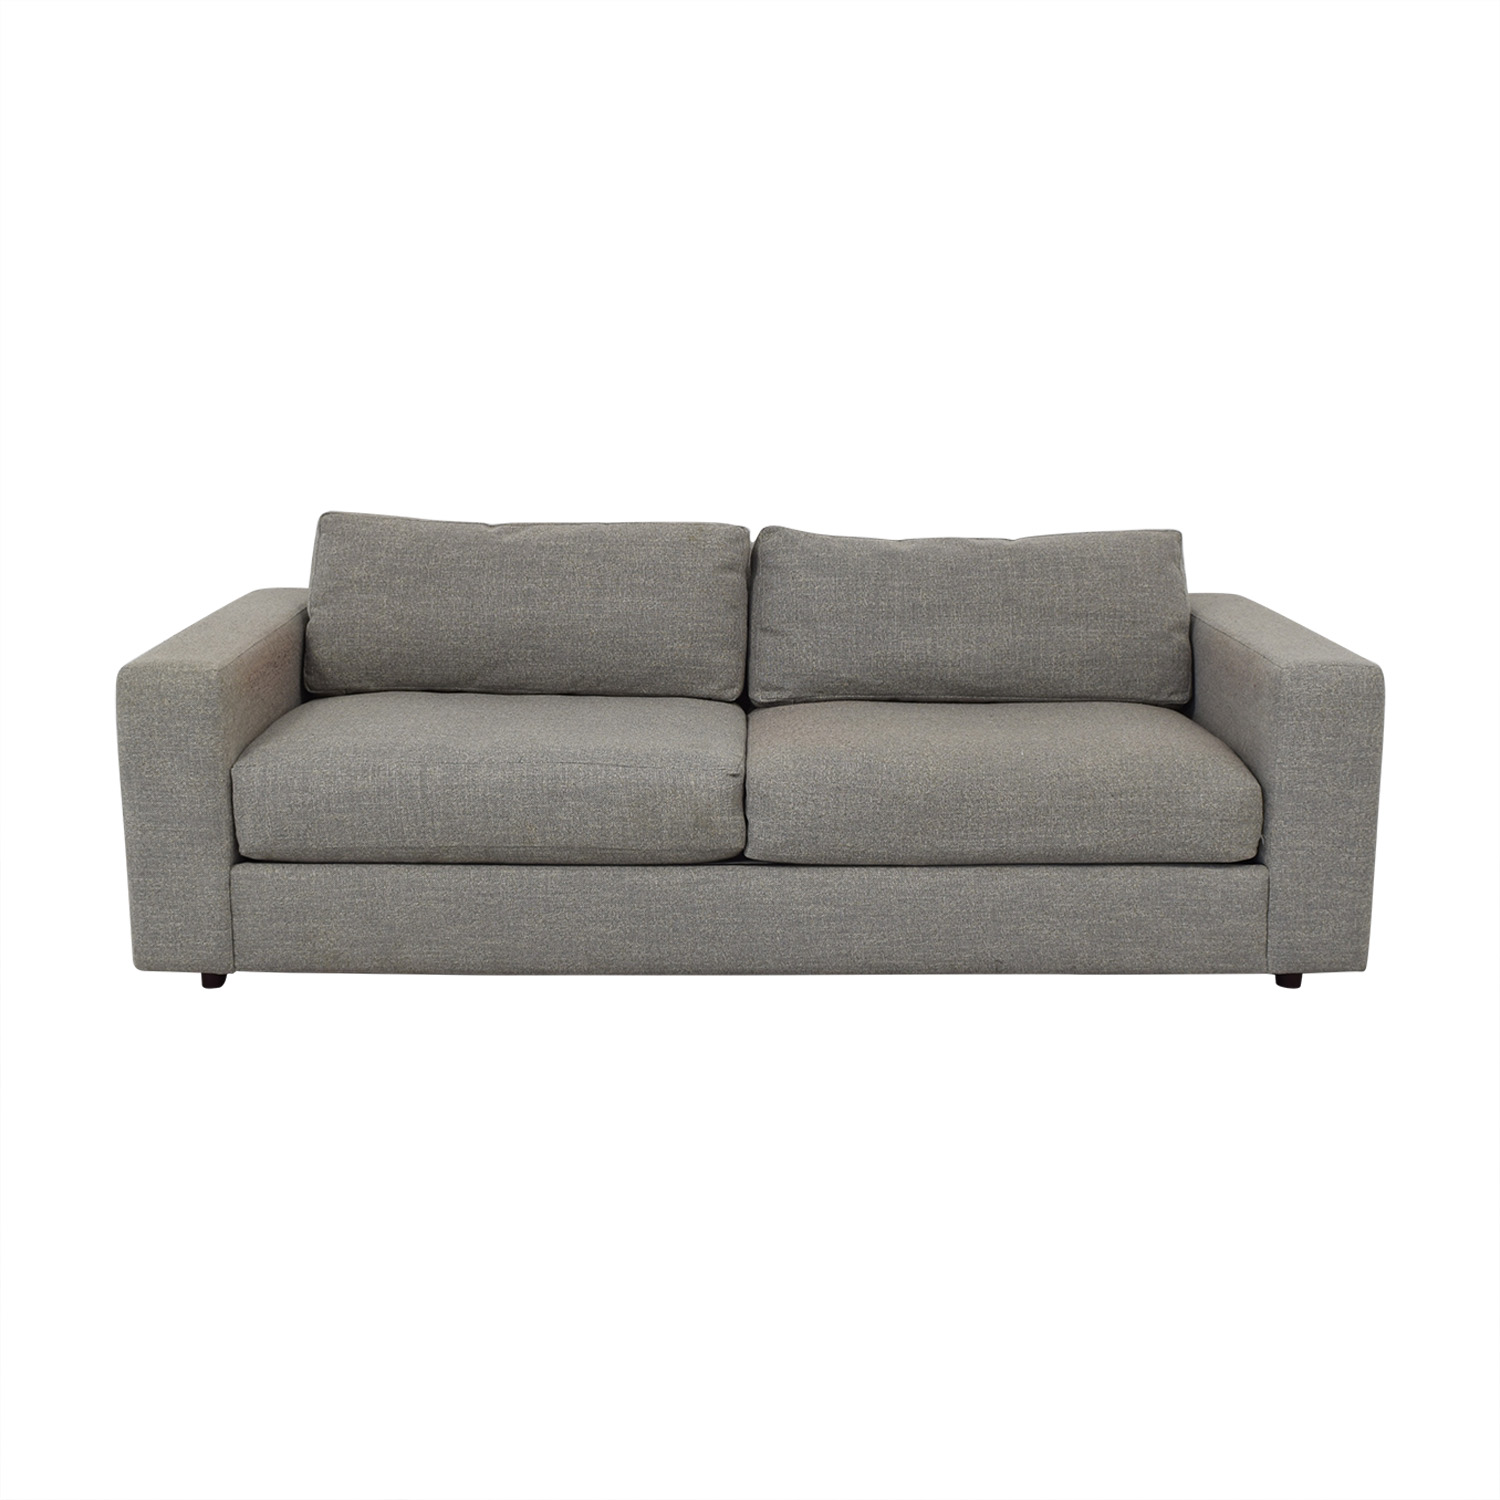 West Elm West Elm Urban Sofa price